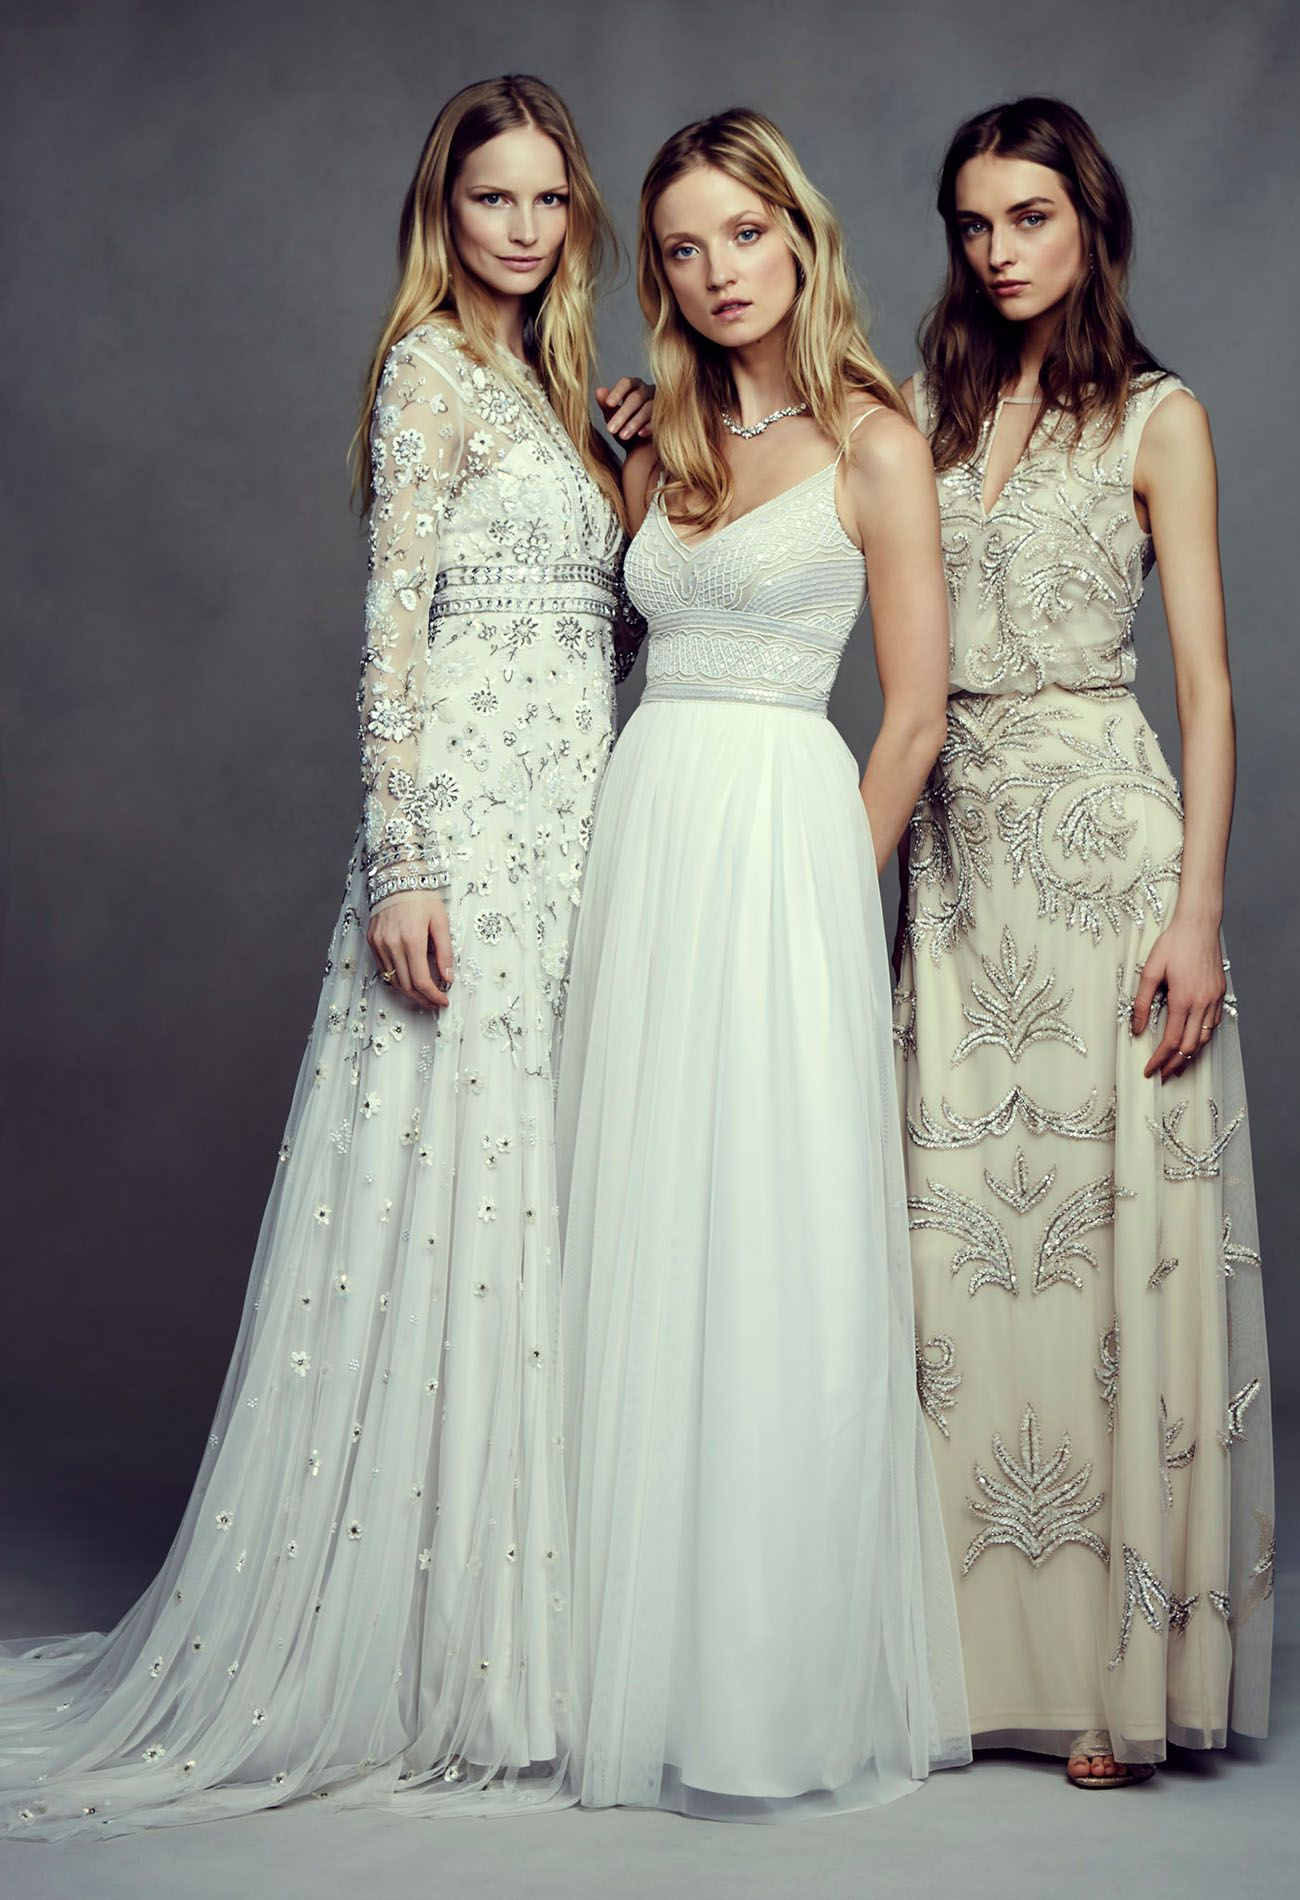 Boho collection from BHLDN